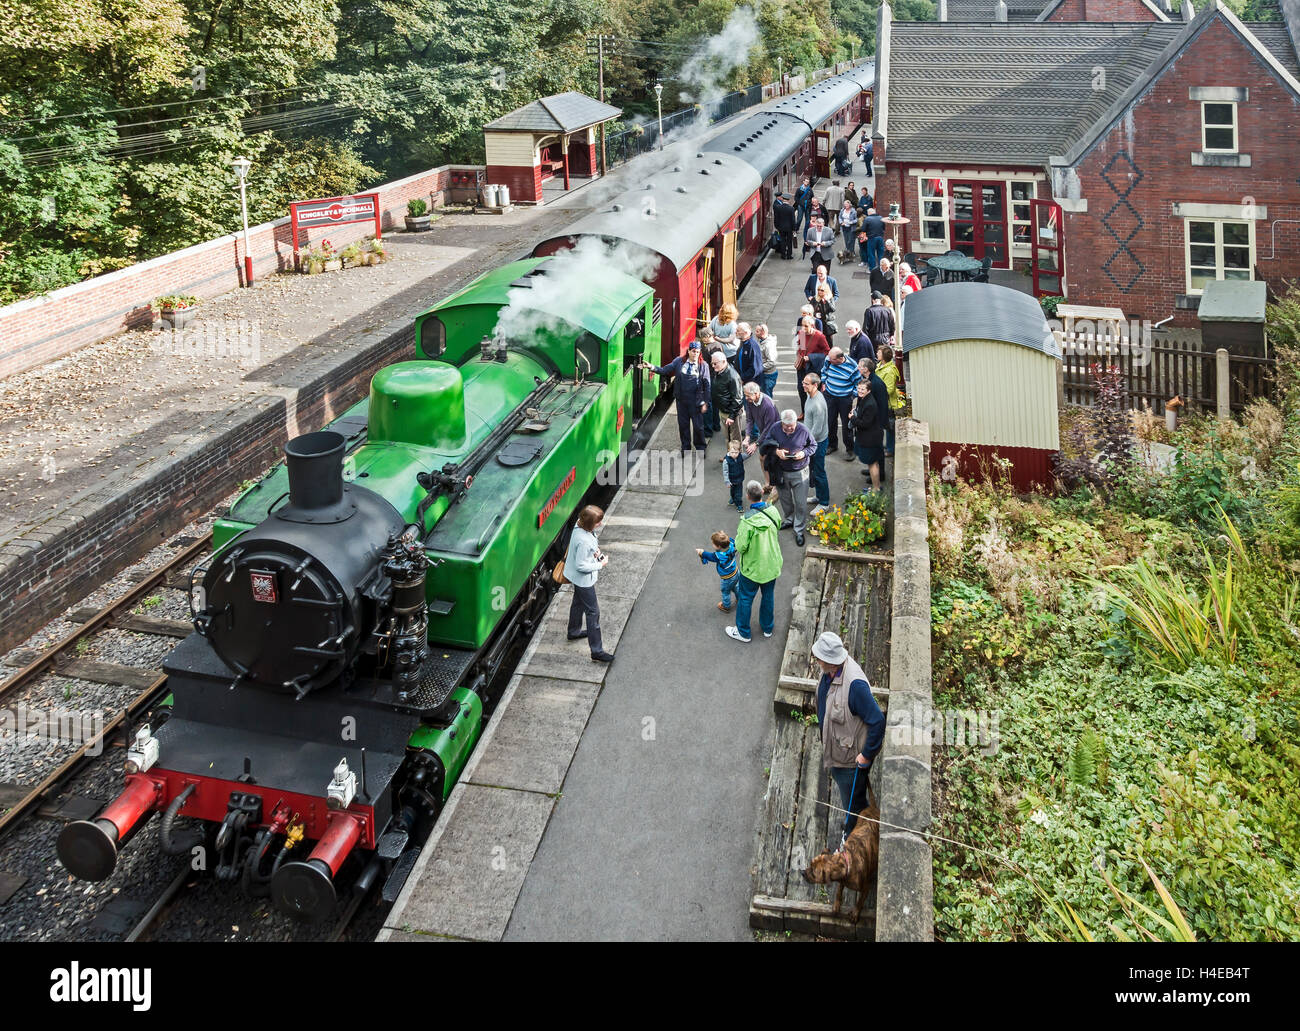 Train at Kingsley & Froghall railwaly station at the Churnet Valley Railway in Staffordshire England - Stock Image